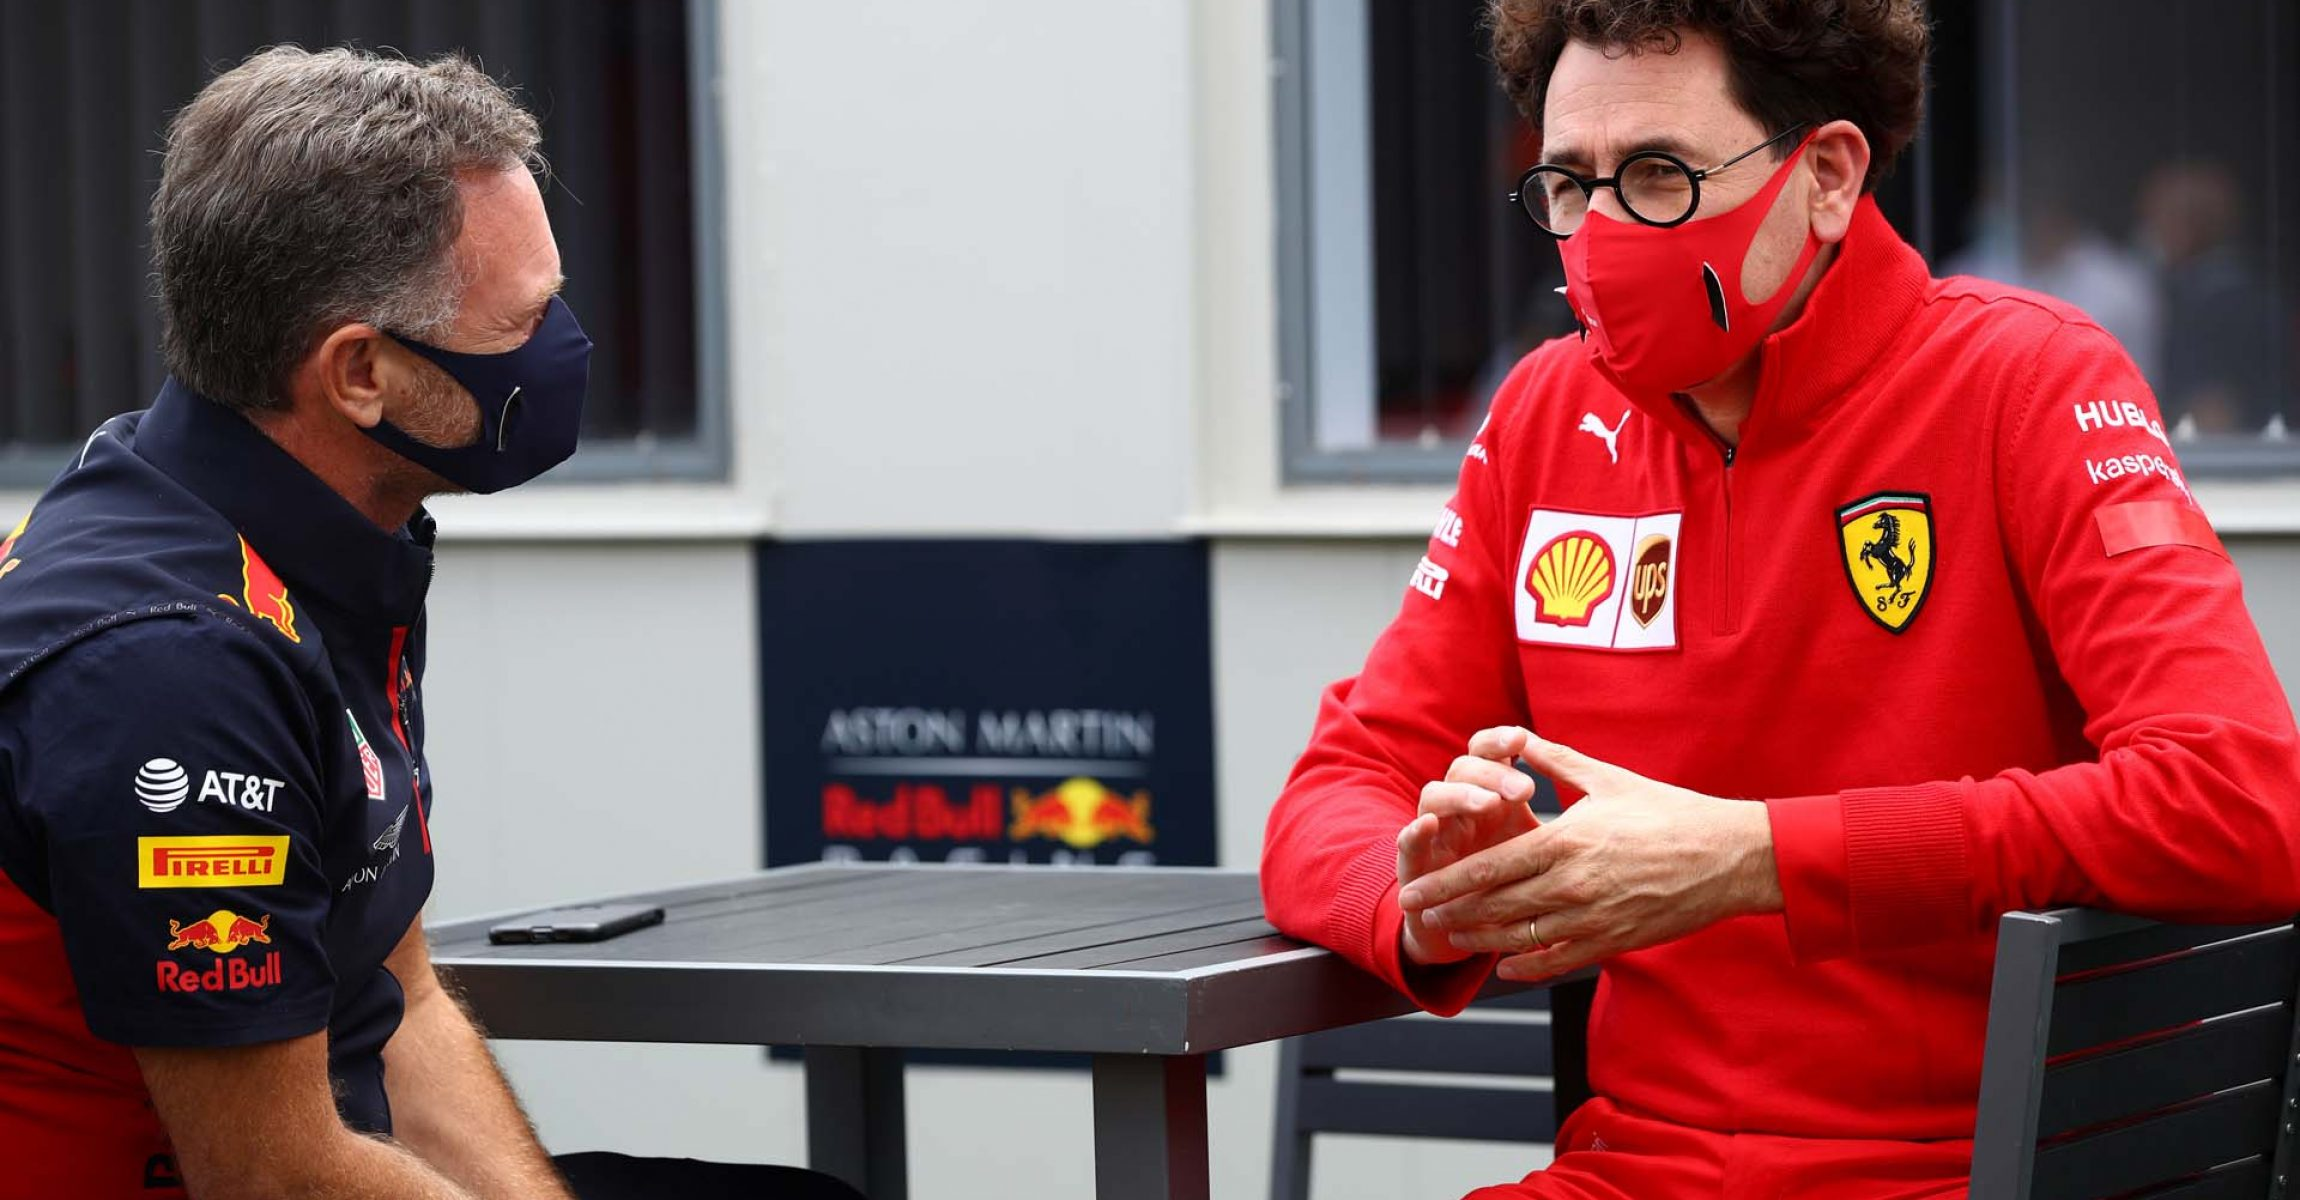 NORTHAMPTON, ENGLAND - AUGUST 02: Red Bull Racing Team Principal Christian Horner and Scuderia Ferrari Team Principal Mattia Binotto talk in the Paddock before the F1 Grand Prix of Great Britain at Silverstone on August 02, 2020 in Northampton, England. (Photo by Mark Thompson/Getty Images)